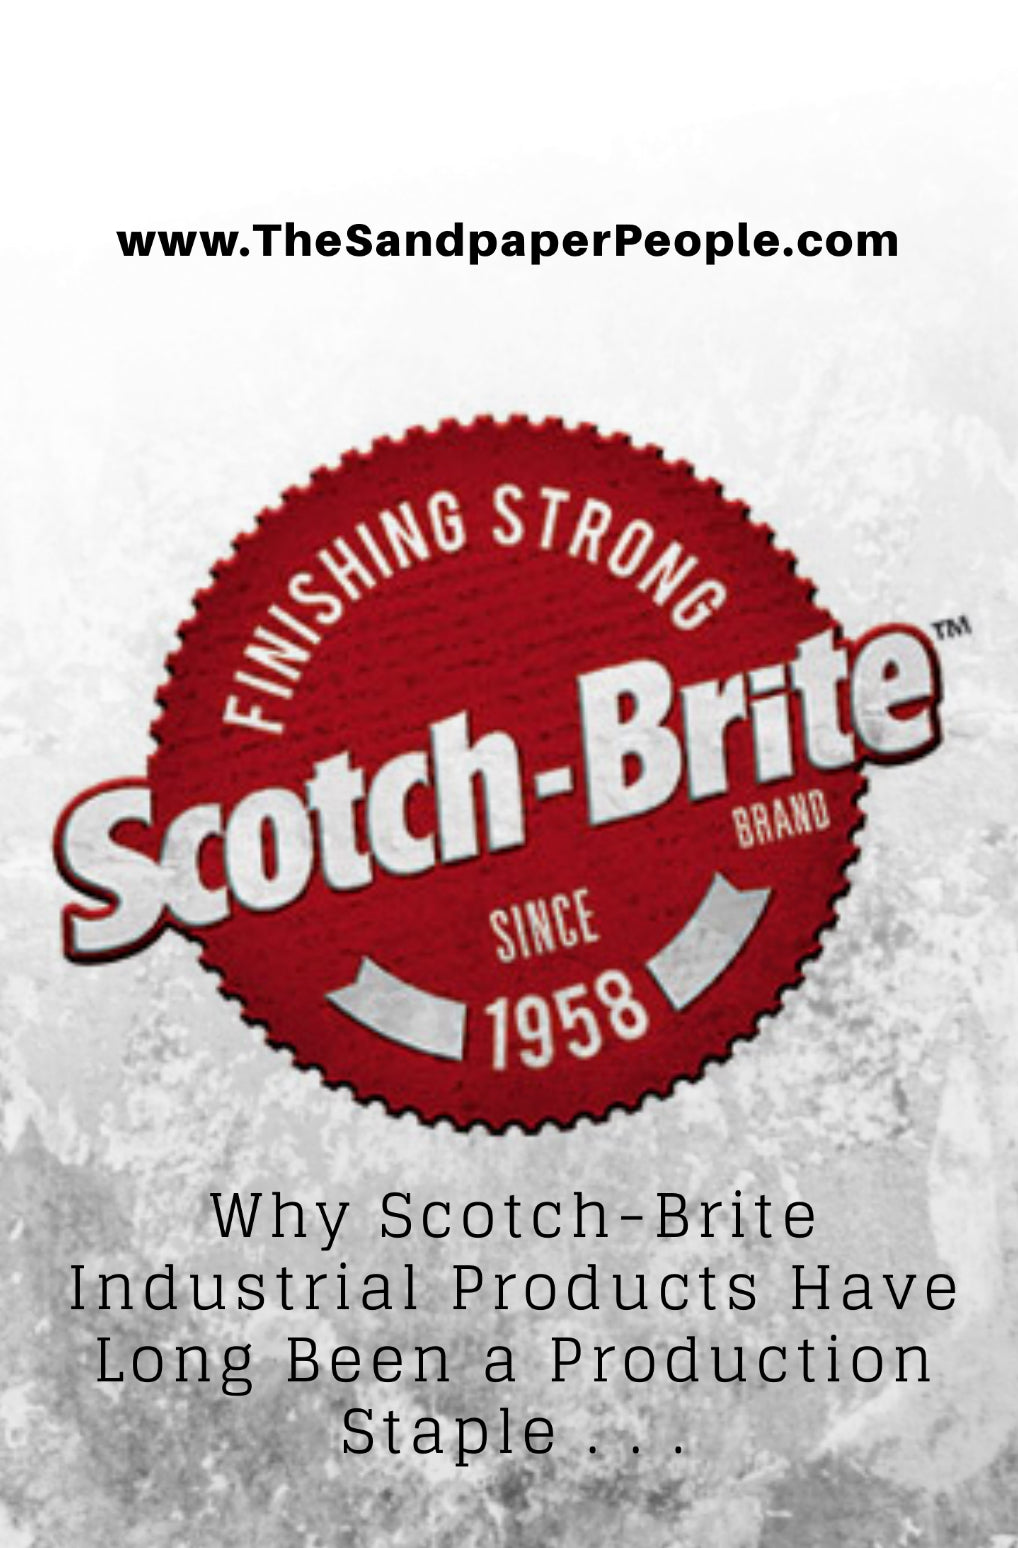 Why Scotch-Brite Products Have Long Been a Production Staple